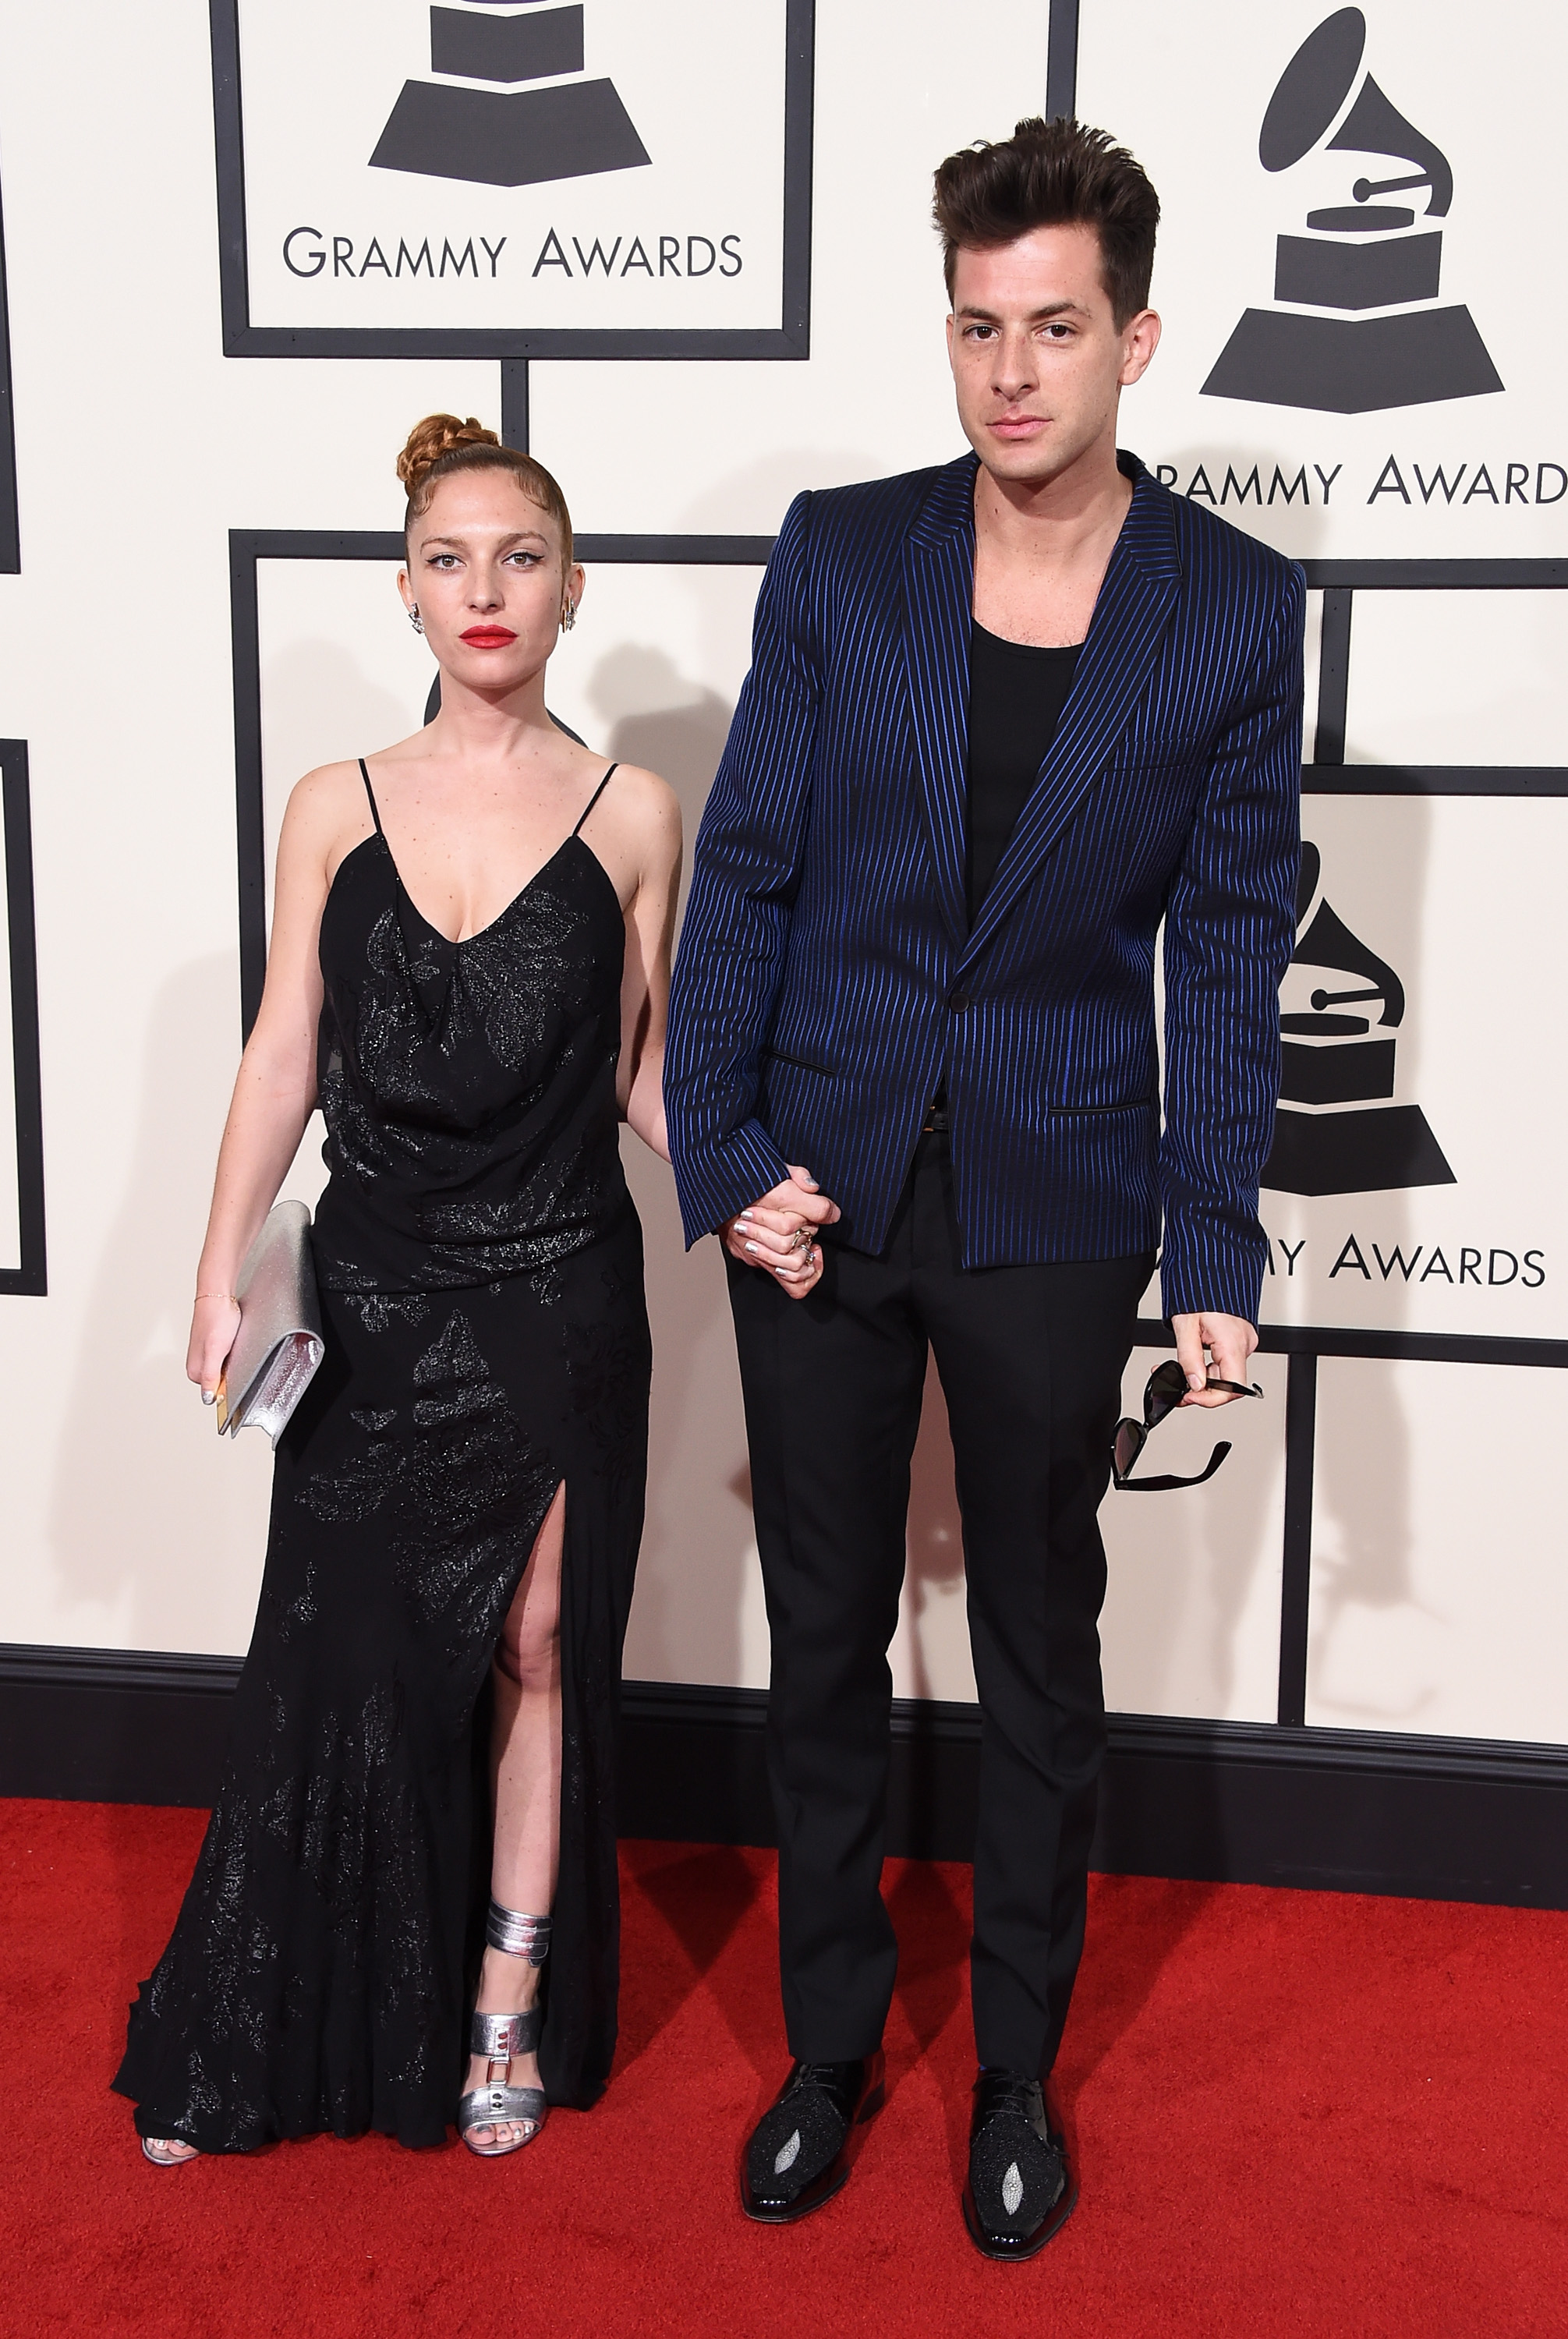 Josephine de la Baume, left, and Mark Ronson, right, attend the 58th GRAMMY Awards at Staples Center on Feb. 15, 2016 in Los Angeles.